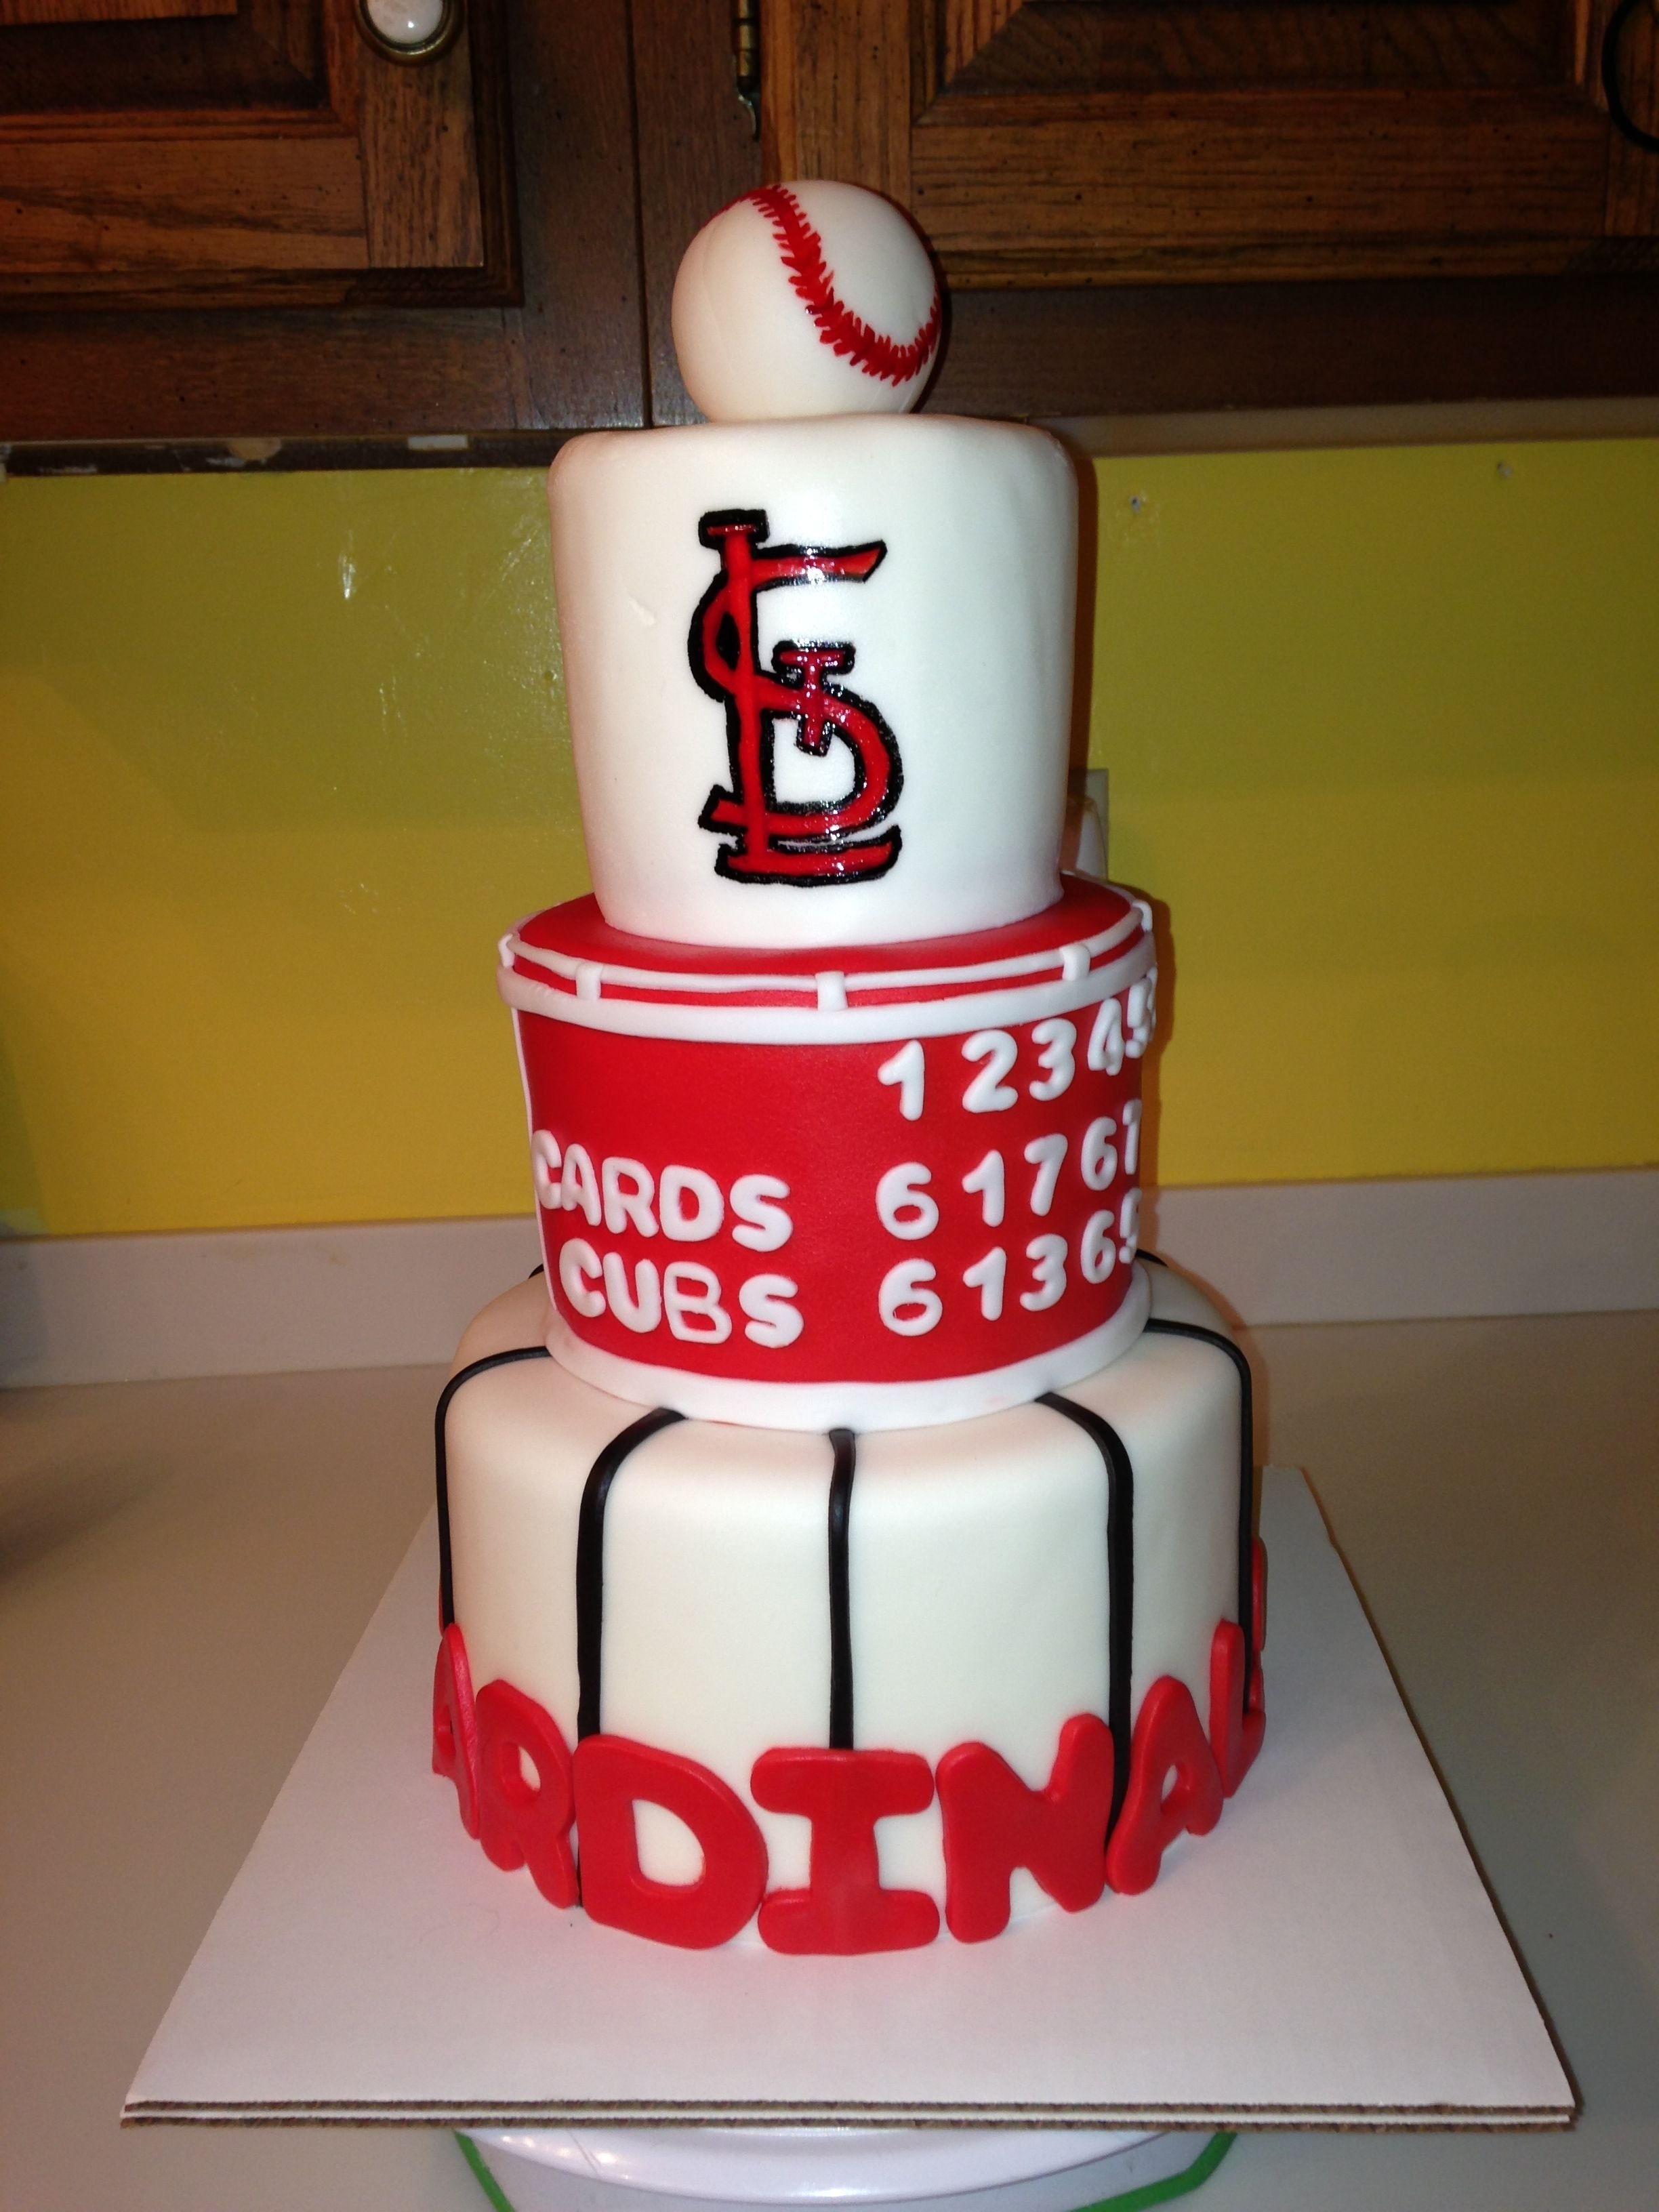 10 Stylish Birthday Party Ideas St. Louis st louis cardinals cake for a surprise bday cakes pinterest